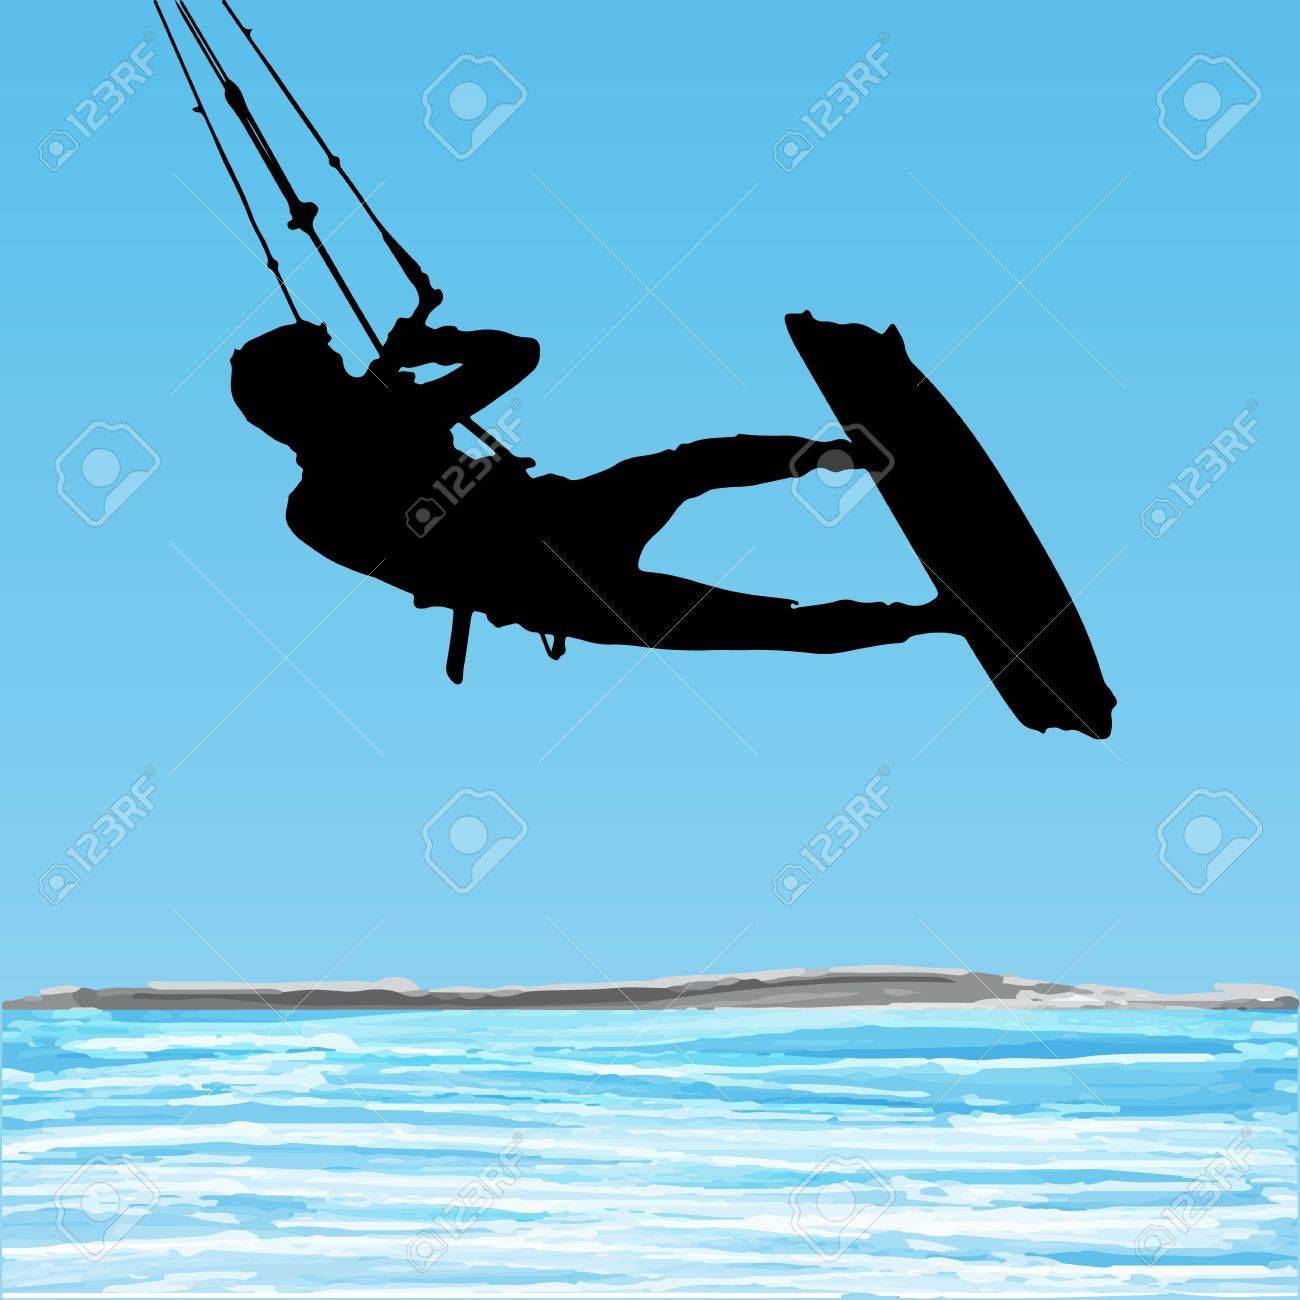 Kiteboarder aerial jump silhouette on a water and blue sky background. - 20209031